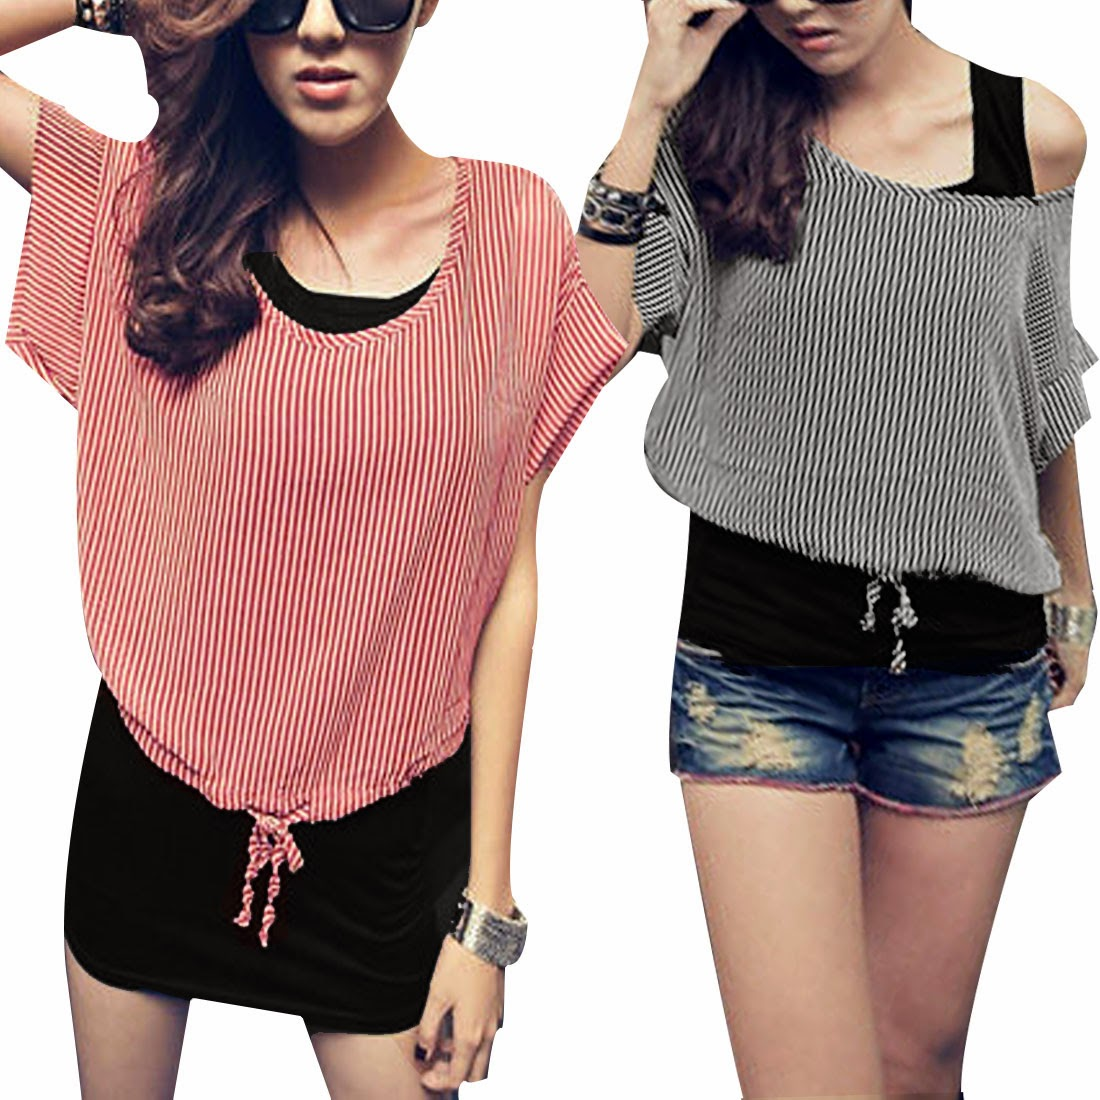 fashionable tops cool u0026 trendy fashion tops for girls jterukf